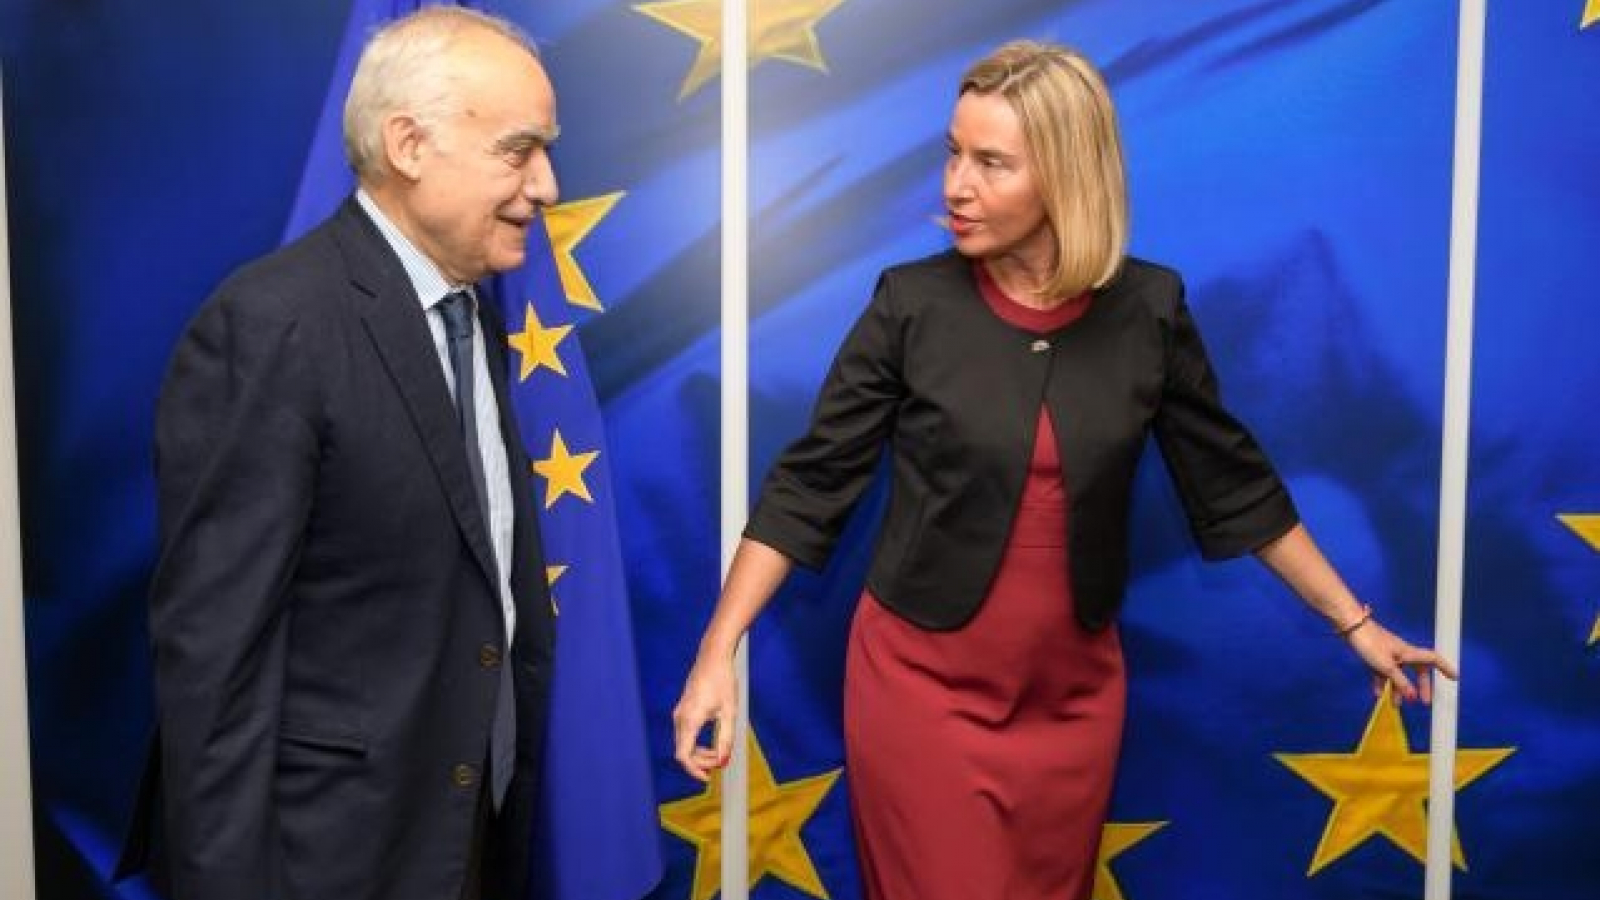 Federica Mogherini, High Representative of the Union for Foreign Affairs and Security Policy and Vice-President of the EC, receives the visit of Ghassan Salamé, Special Representative and Head of the United Nations Support Mission in Libya (UNSMIL), in Brussels